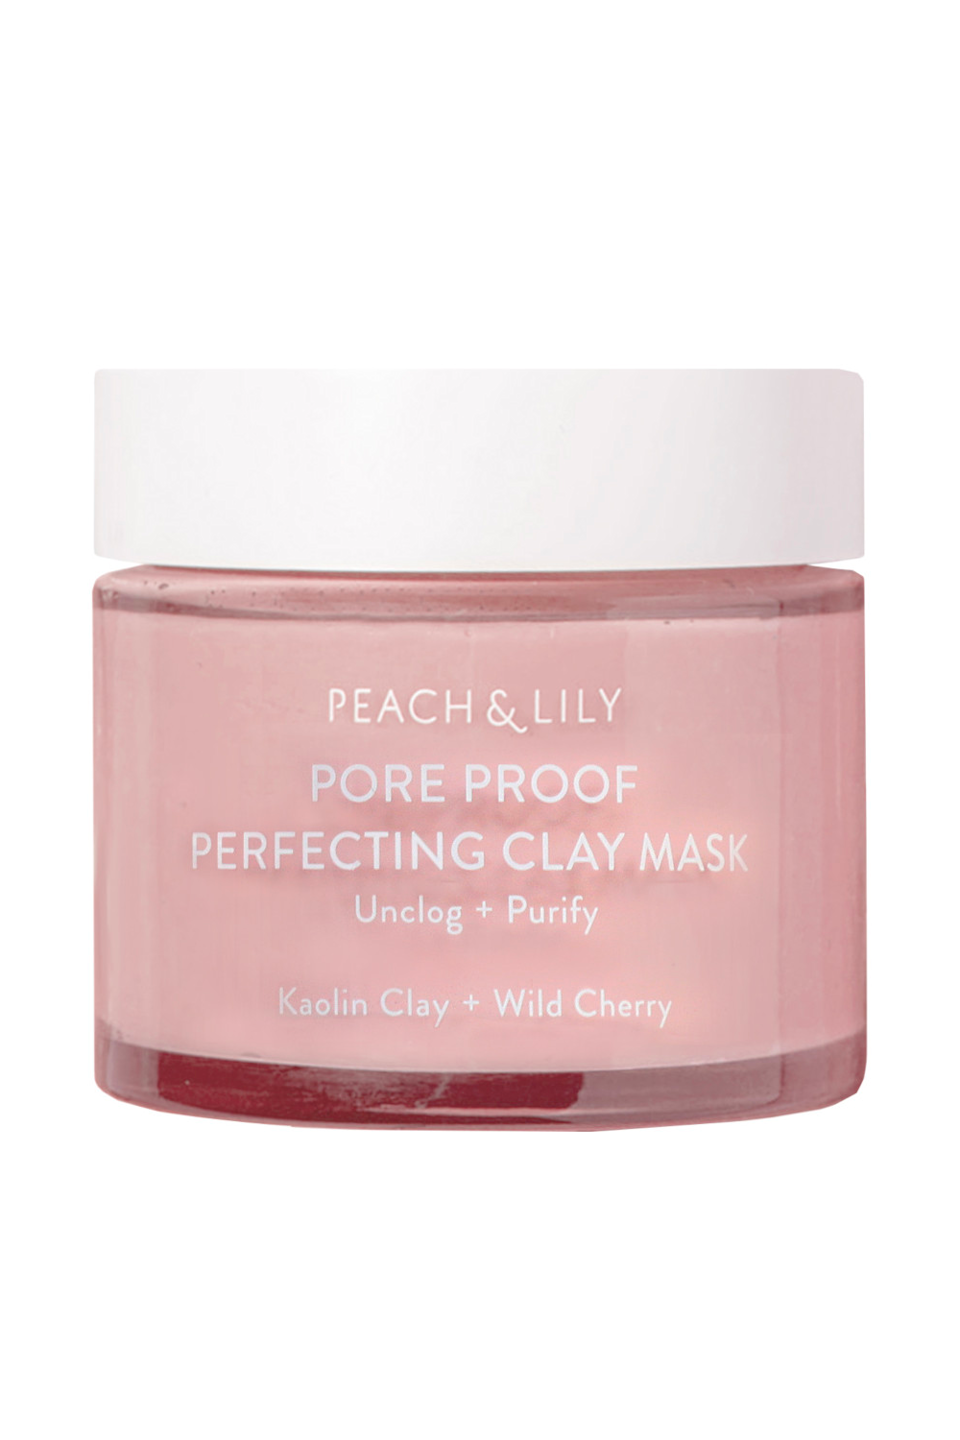 "<p><strong>PEACH & LILY</strong></p><p>ulta.com</p><p><strong>$43.00</strong></p><p><a href=""https://go.redirectingat.com?id=74968X1596630&url=https%3A%2F%2Fwww.ulta.com%2Fpore-proof-perfecting-clay-mask%3FproductId%3Dpimprod2008641&sref=https%3A%2F%2Fwww.cosmopolitan.com%2Fstyle-beauty%2Fbeauty%2Fg36176731%2Fbest-clay-face-masks%2F"" rel=""nofollow noopener"" target=""_blank"" data-ylk=""slk:Shop Now"" class=""link rapid-noclick-resp"">Shop Now</a></p><p>Whether you're dealing with <a href=""https://www.cosmopolitan.com/style-beauty/beauty/a30085157/clogged-pores/"" rel=""nofollow noopener"" target=""_blank"" data-ylk=""slk:clogged pores"" class=""link rapid-noclick-resp"">clogged pores</a>, excess oil, dull skin, or inflammation, you can't exactly go wrong with this multi-tasking clay face mask. The formula's<strong> kaolin clay works to zap oil and shine (<em>without</em> drying you out, TYVM) </strong>while anti-inflammatory extracts (think: strawberry, licorice, and cherry) help soothe any lingering redness.</p>"